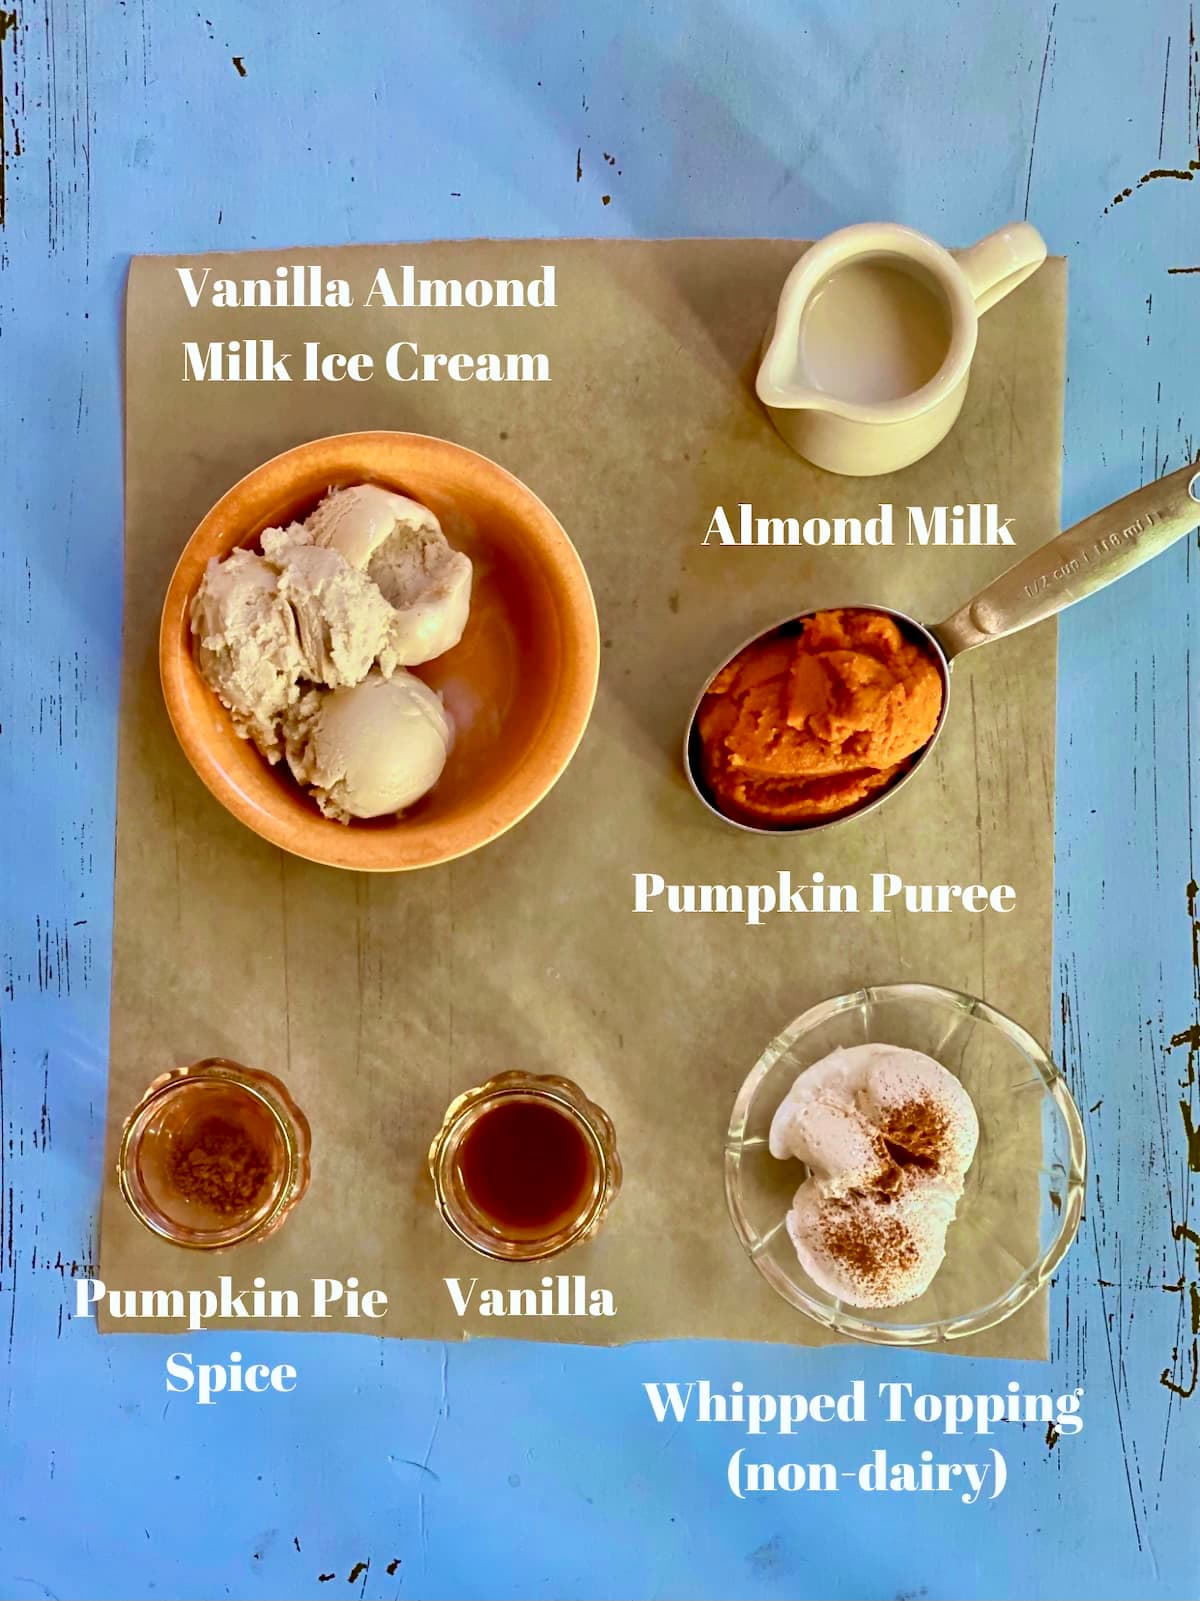 a blue table with ingredients, vanilla ice cream, pumpkin puree, almond milk, pumpkin pie spice, vanilla, with a text overlay saying those ingredient names.